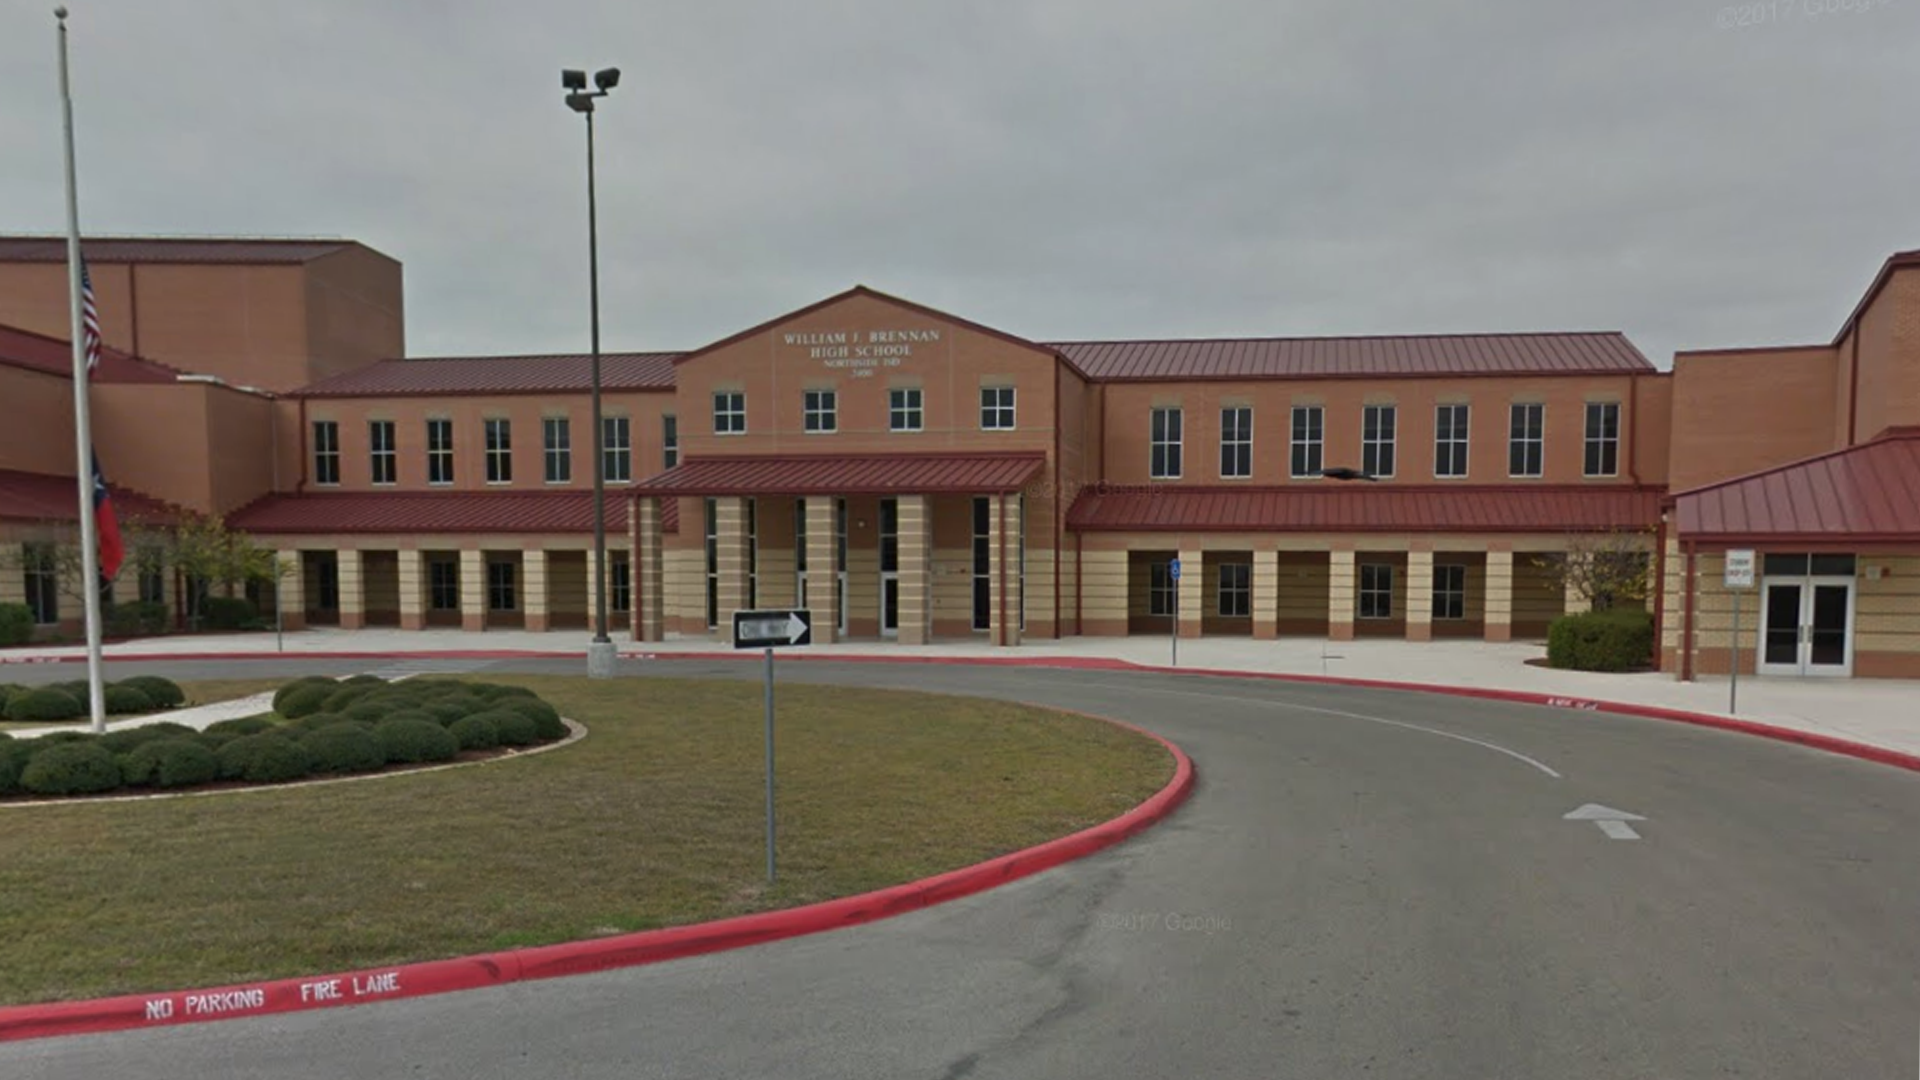 Brennan High School Band Tutor Accused Of Inappropriate